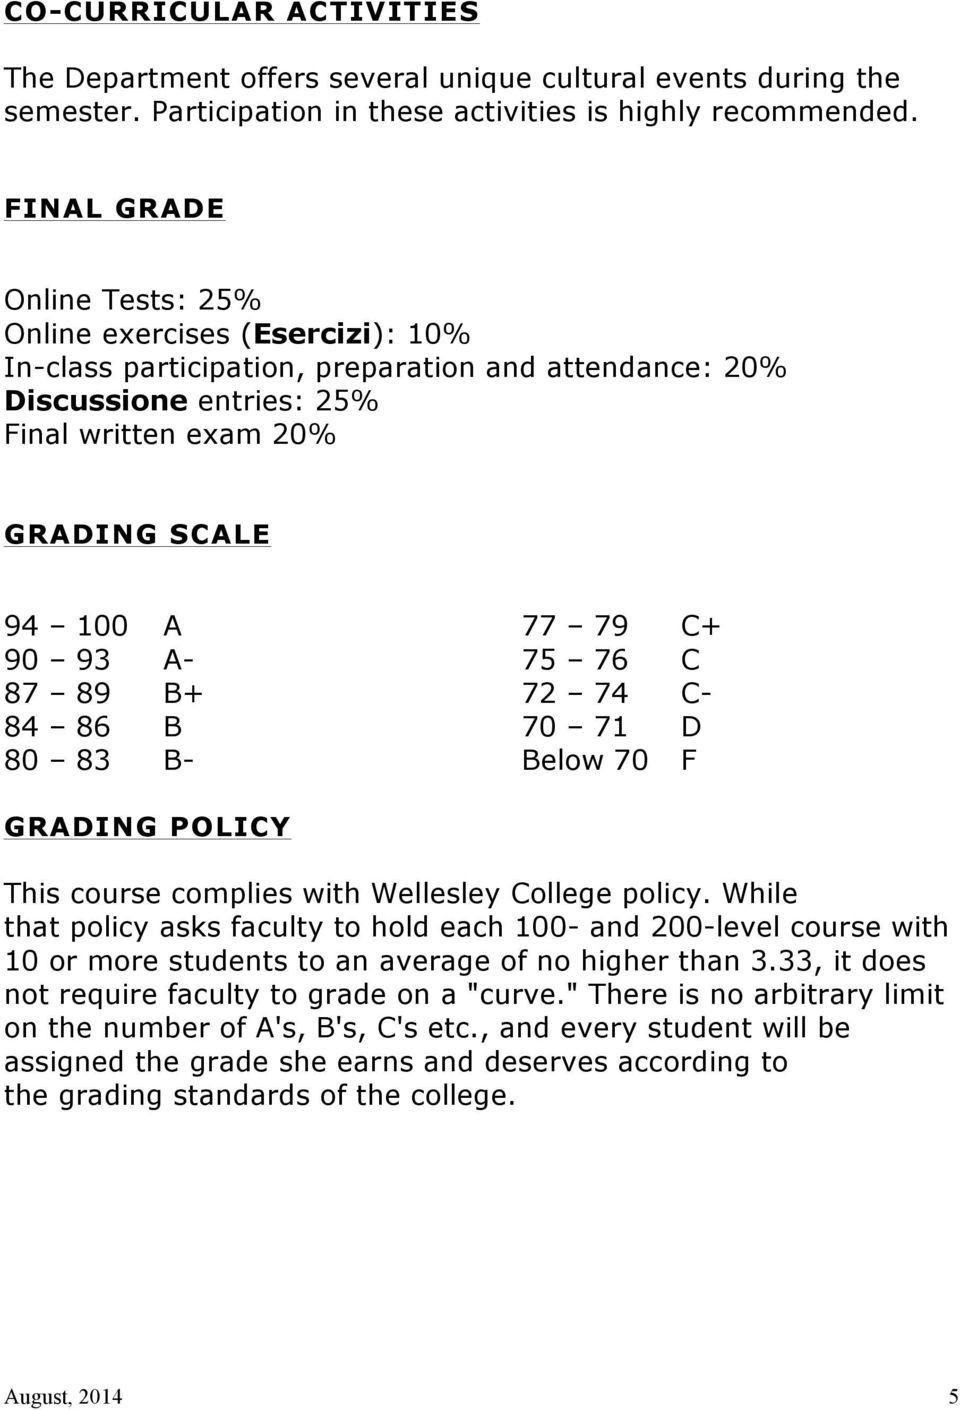 87 89 B+ 84 86 B 80 83 B- 77 79 C+ 75 76 C 72 74 C- 70 71 D Below 70 F GRADING POLICY This course complies with Wellesley College policy.